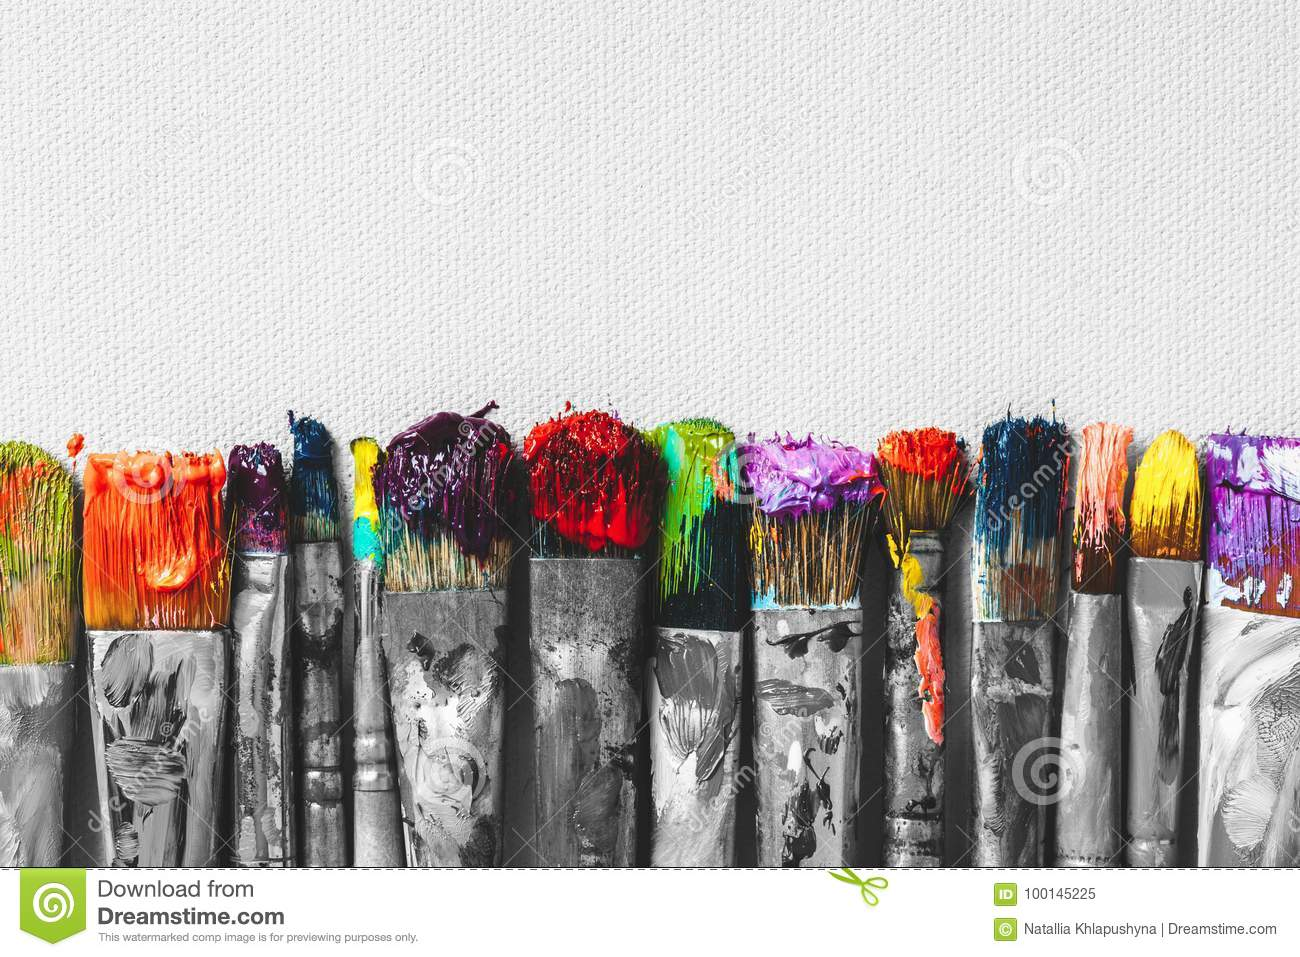 Row of artist paintbrushes with colorful bristle closeup